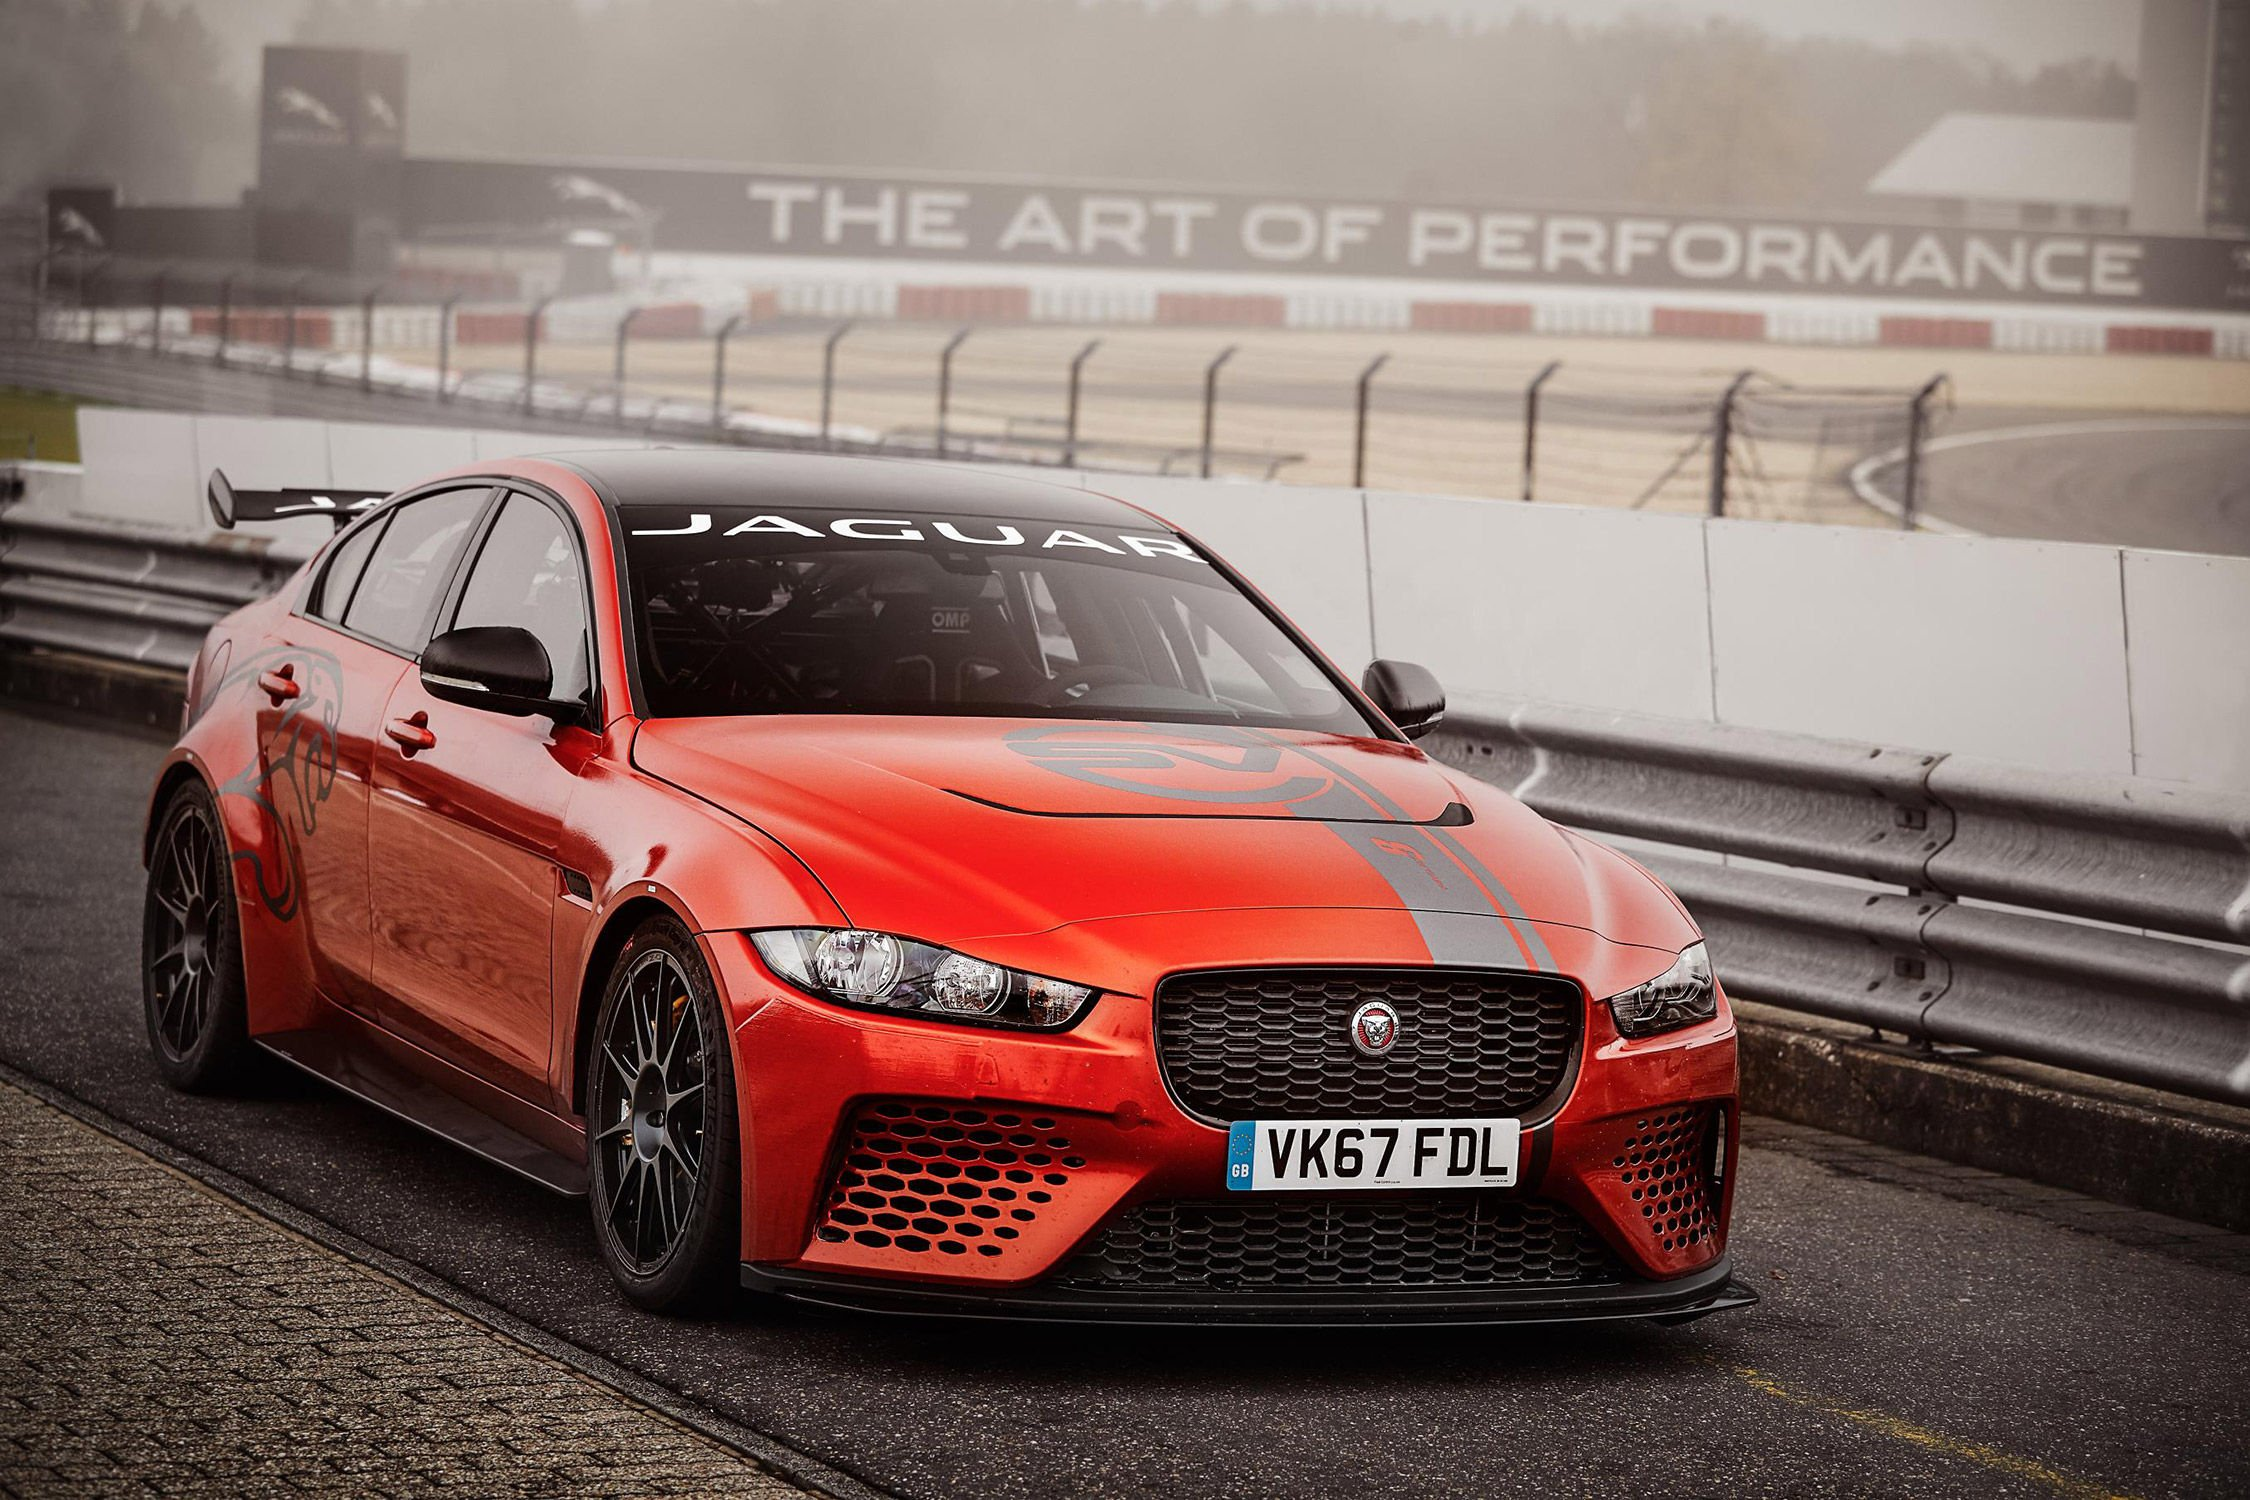 jaguar xe sv project 8 nouvelle reine du ring actualit automobile motorlegend. Black Bedroom Furniture Sets. Home Design Ideas